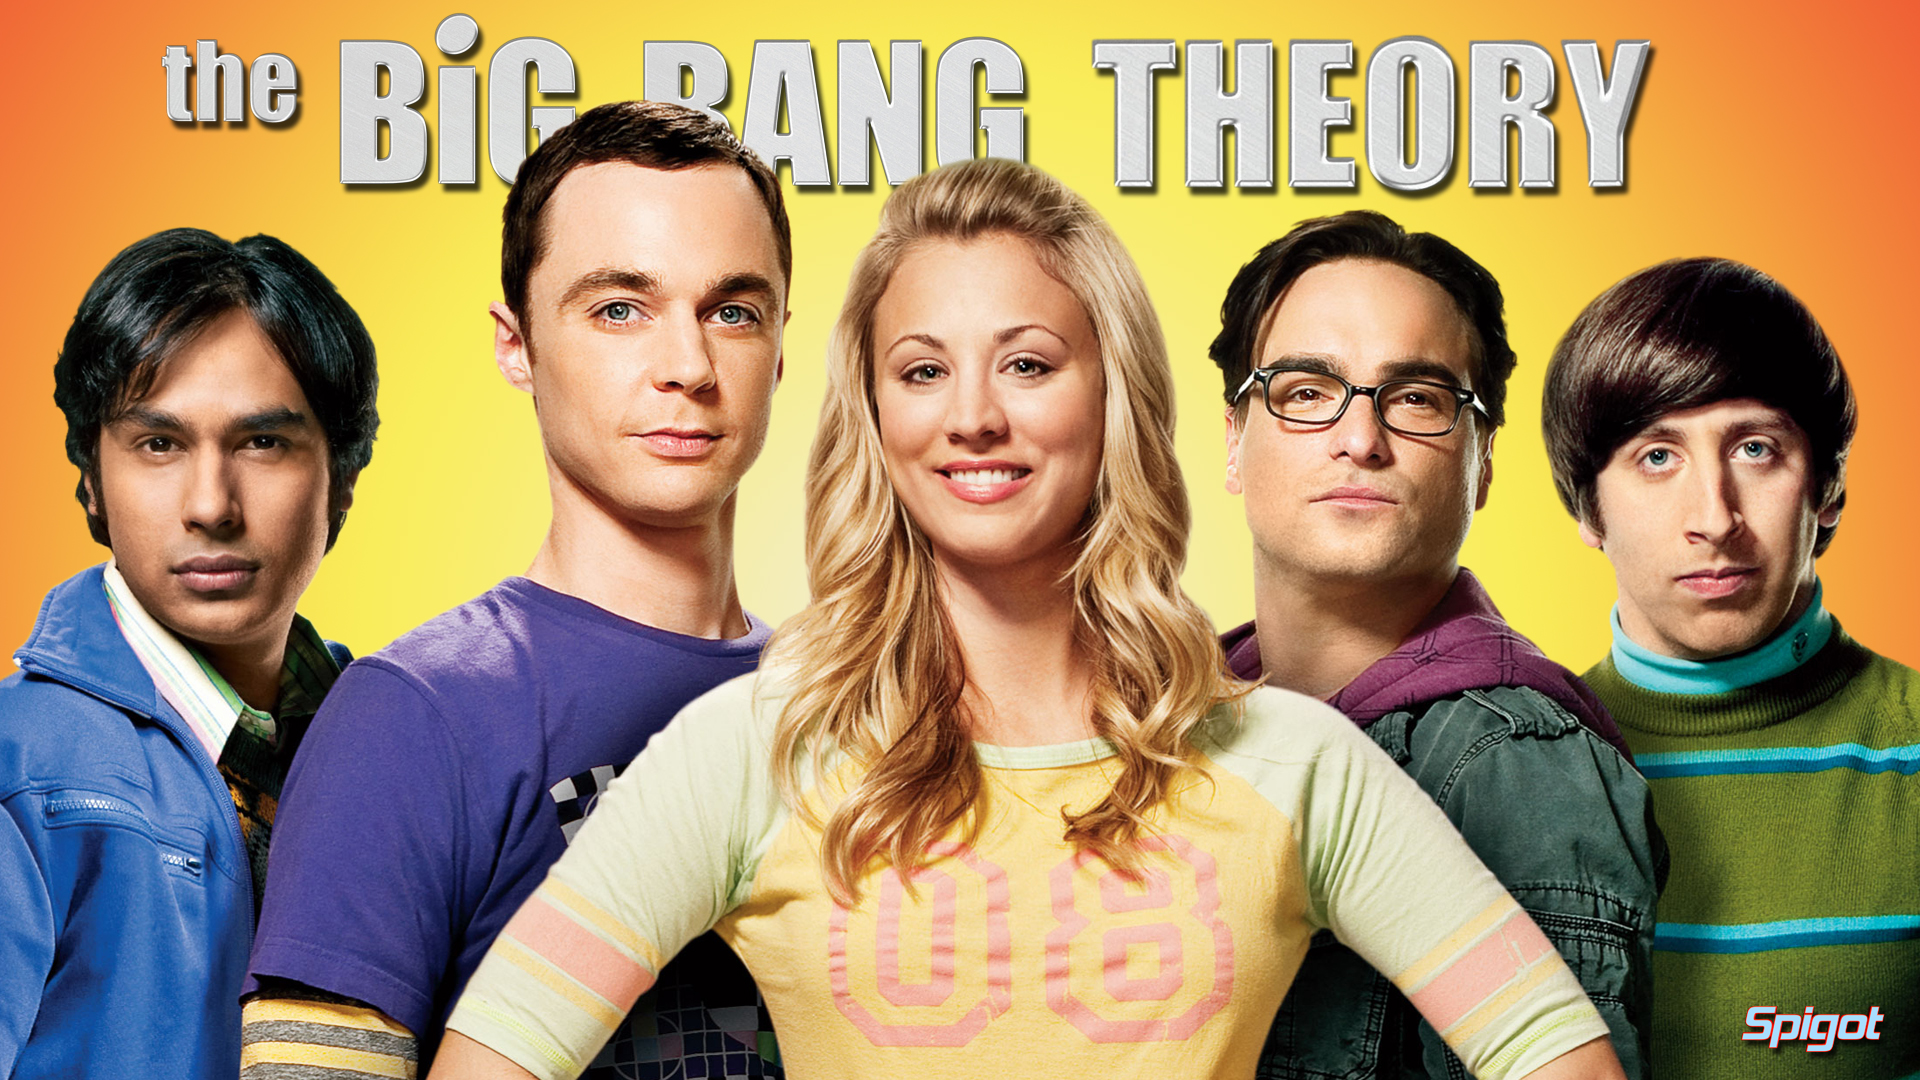 the big bang theory wallpaper #2 | george spigot's blog